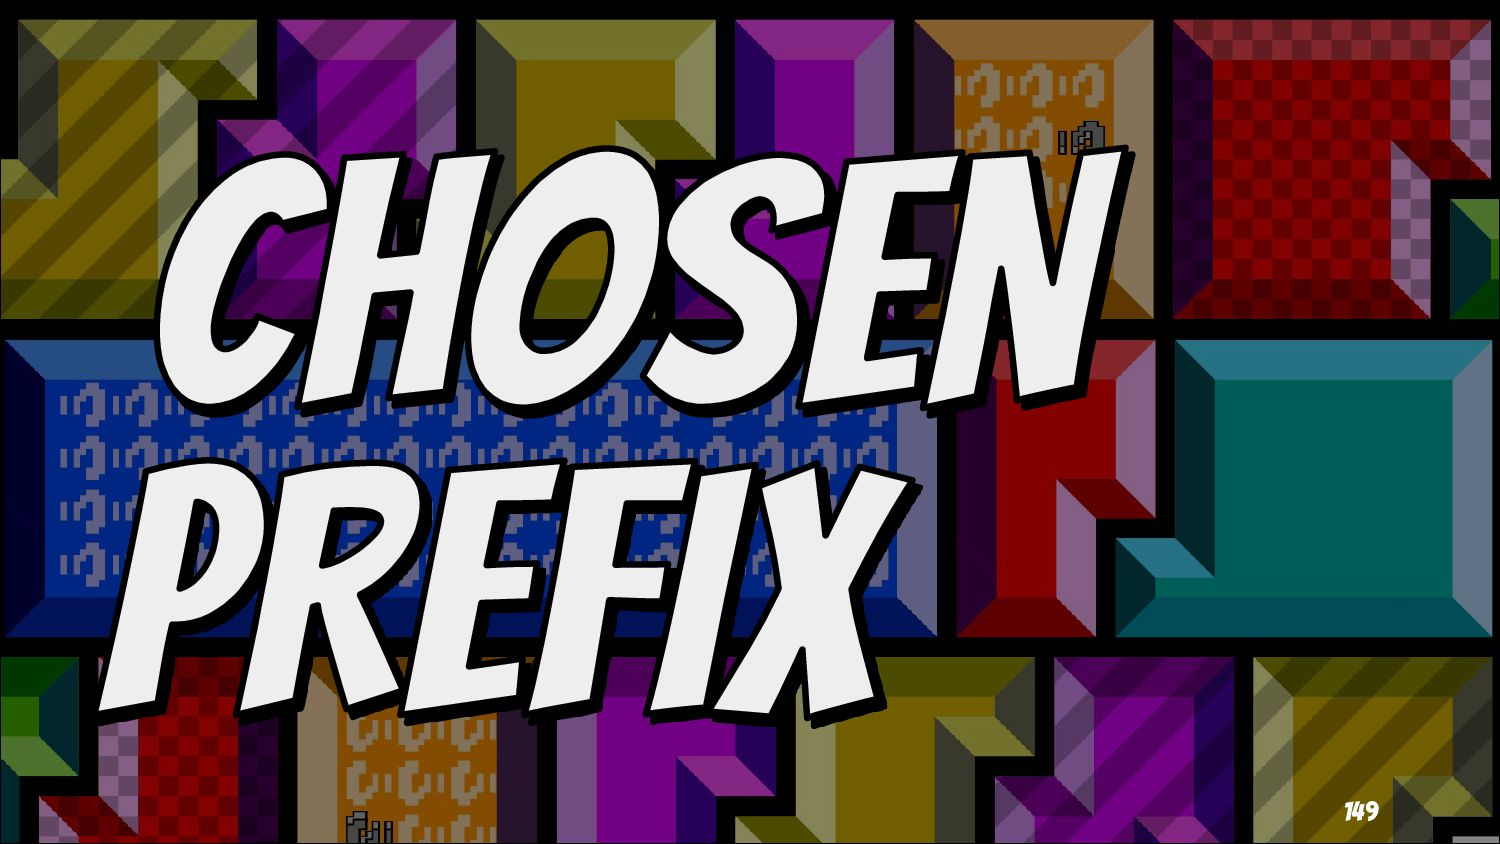 The two Identical prefix collisions against MD5 ...